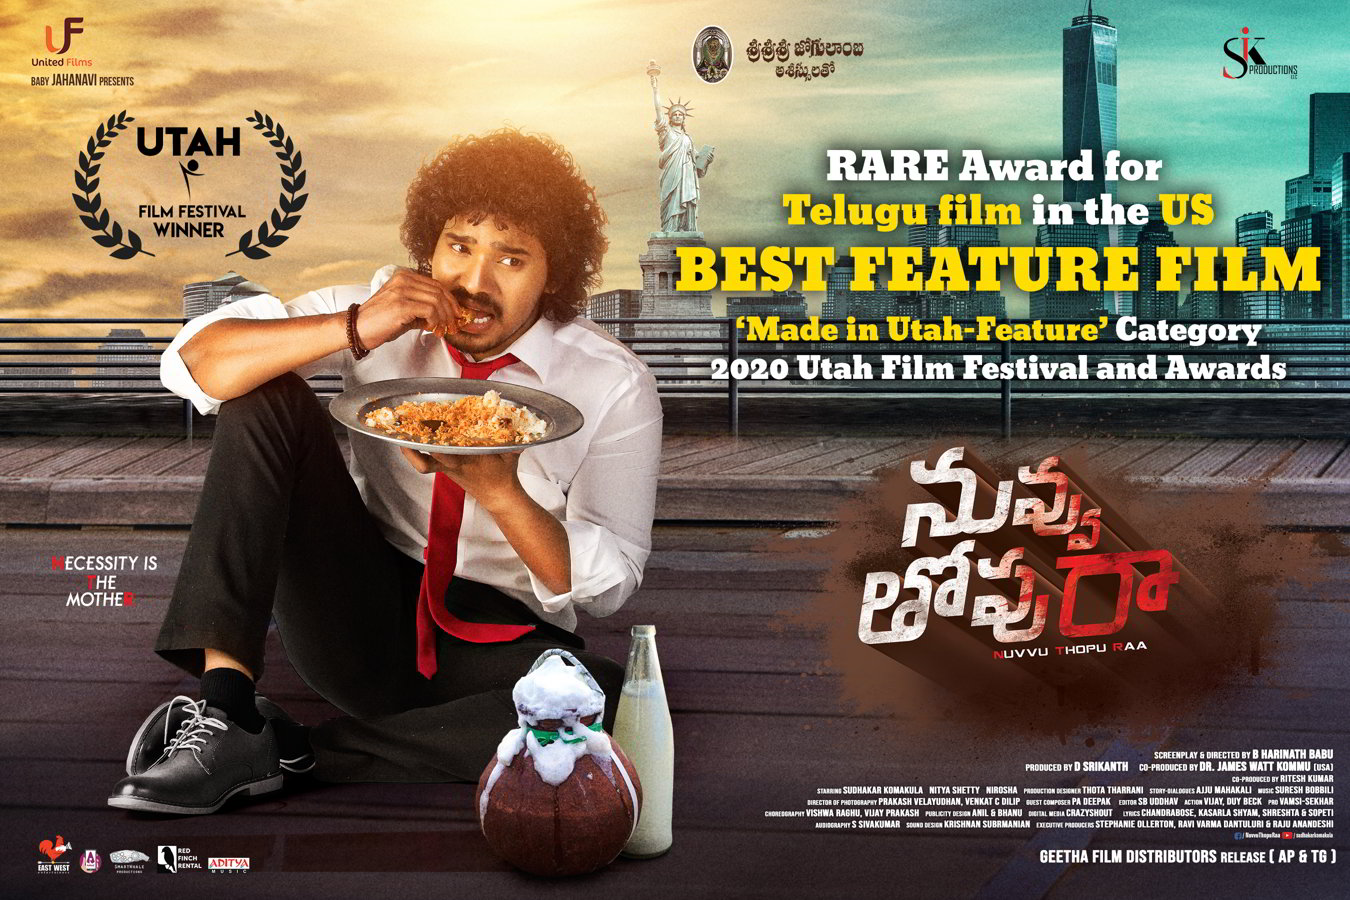 International Award For Nuvvu Thopu Raa